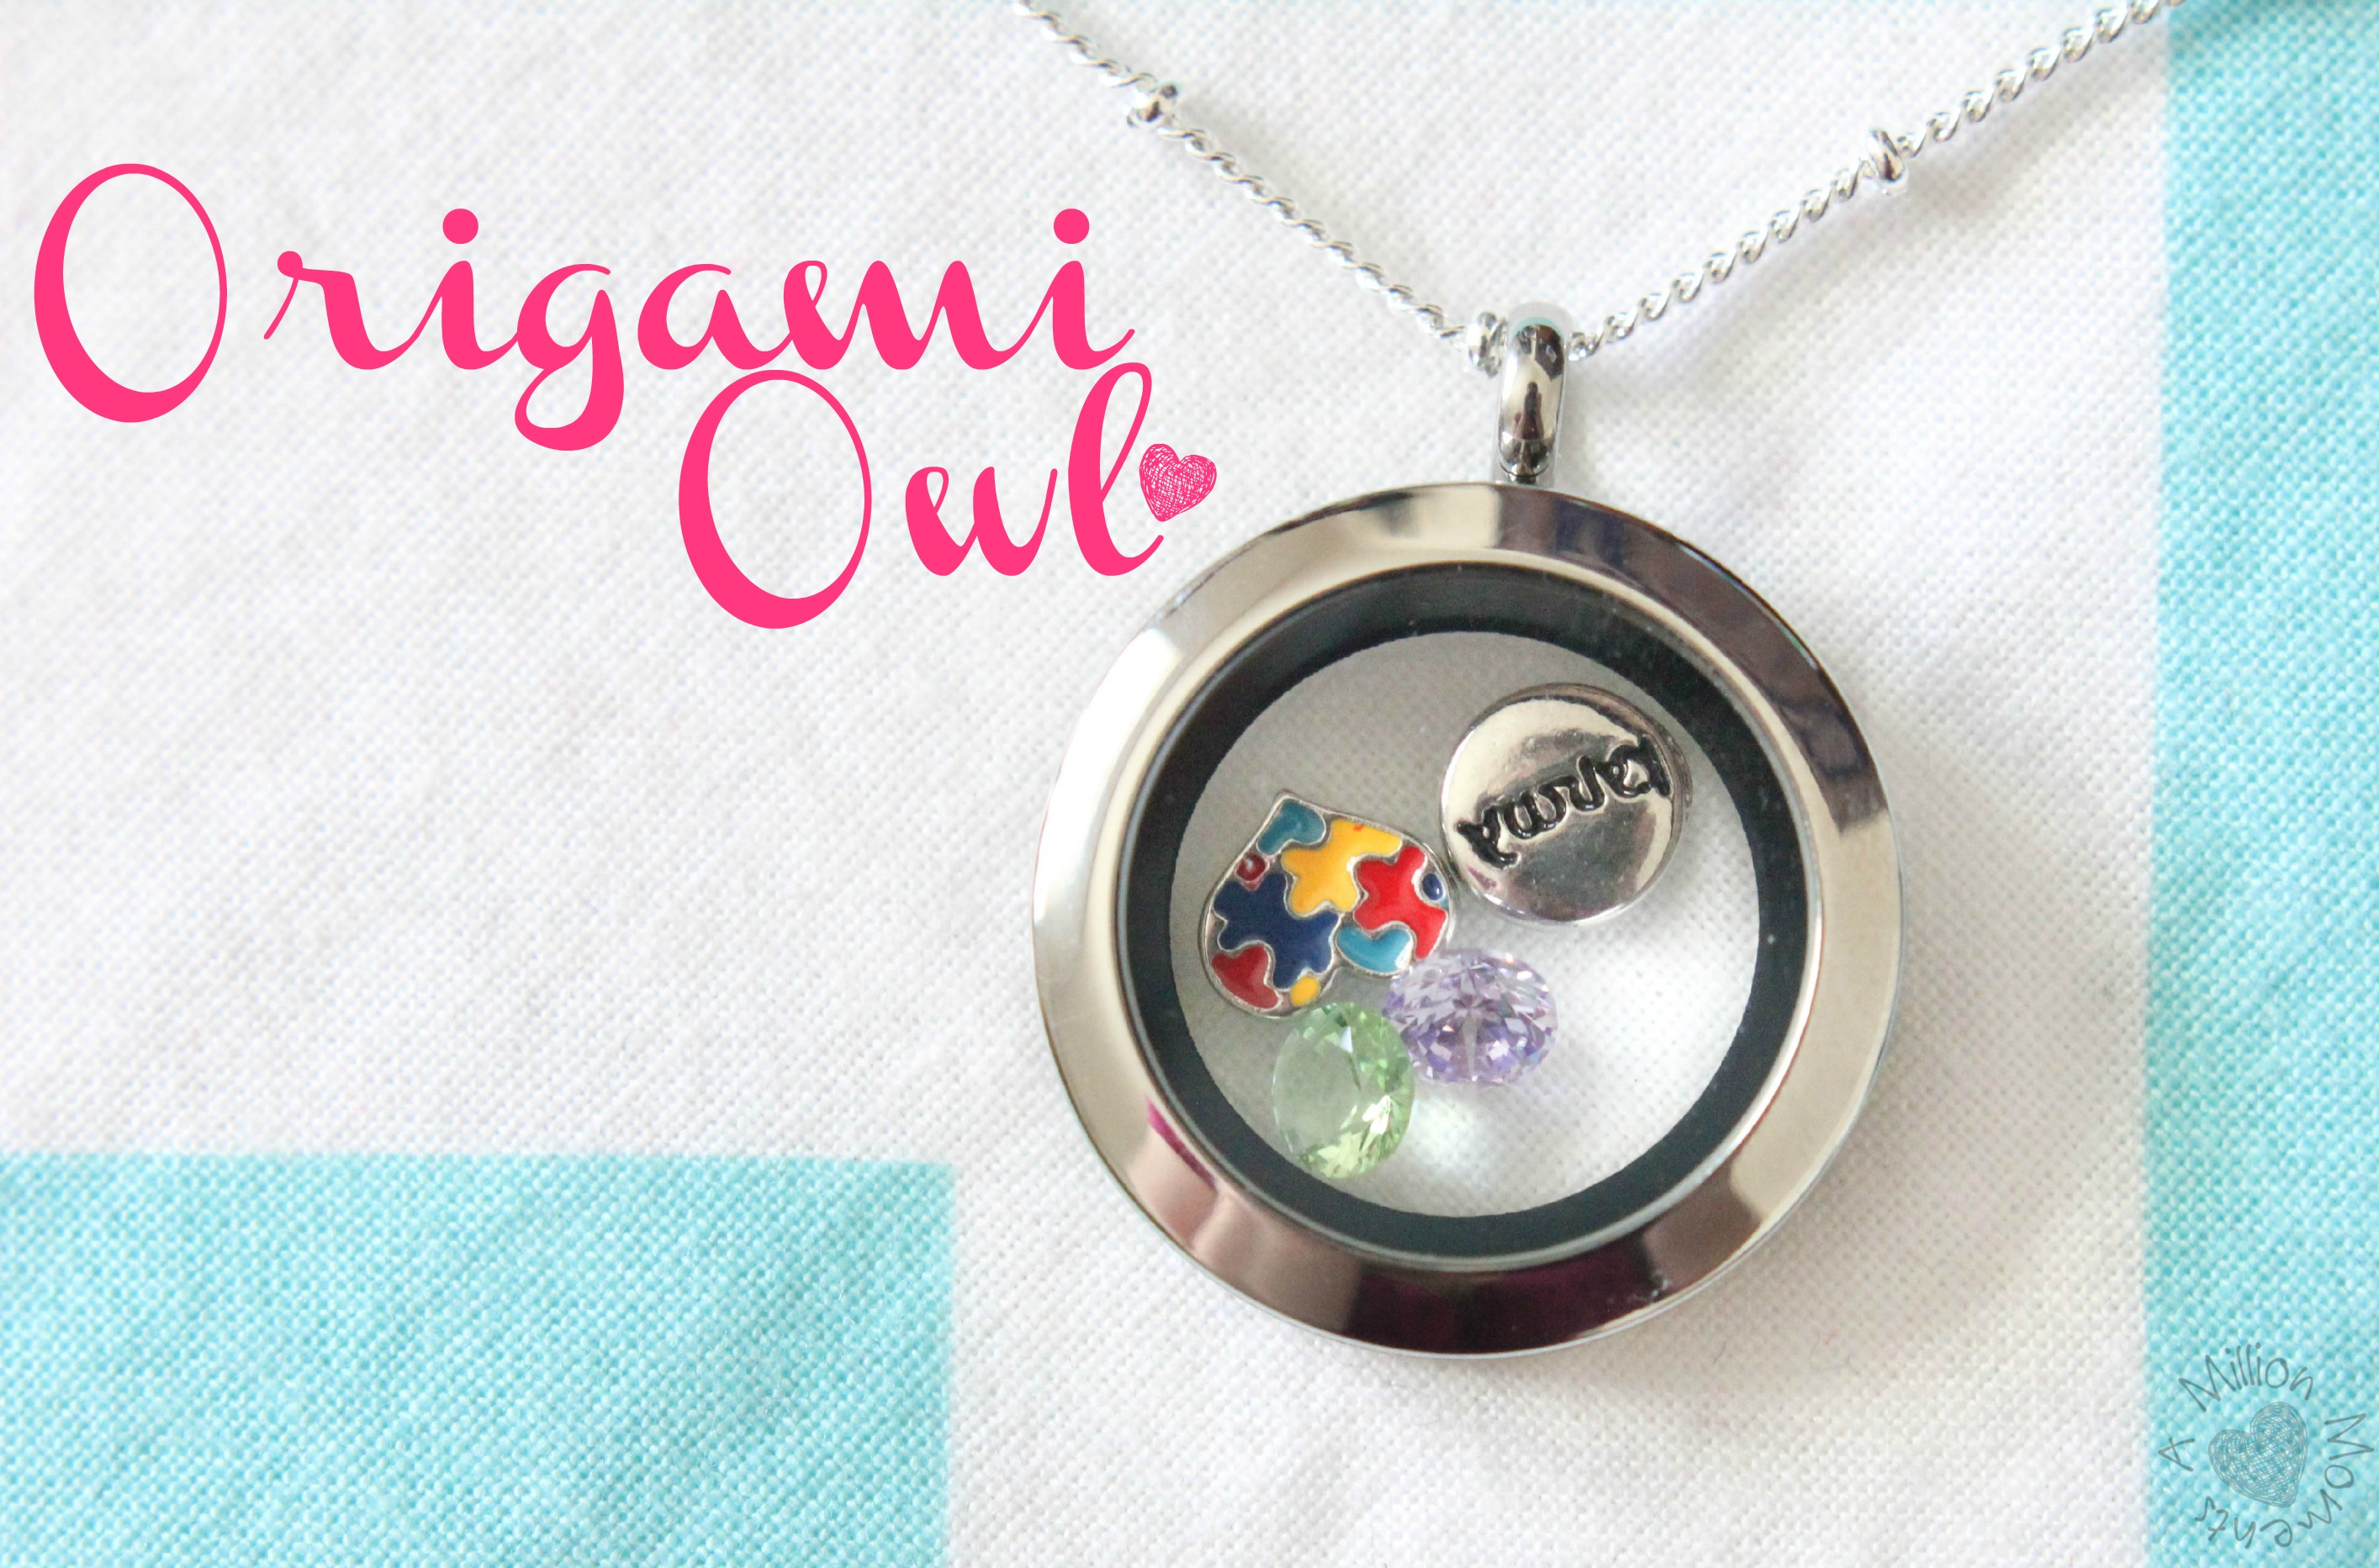 Origami Owl Giveaway! (Ends 4/5/13